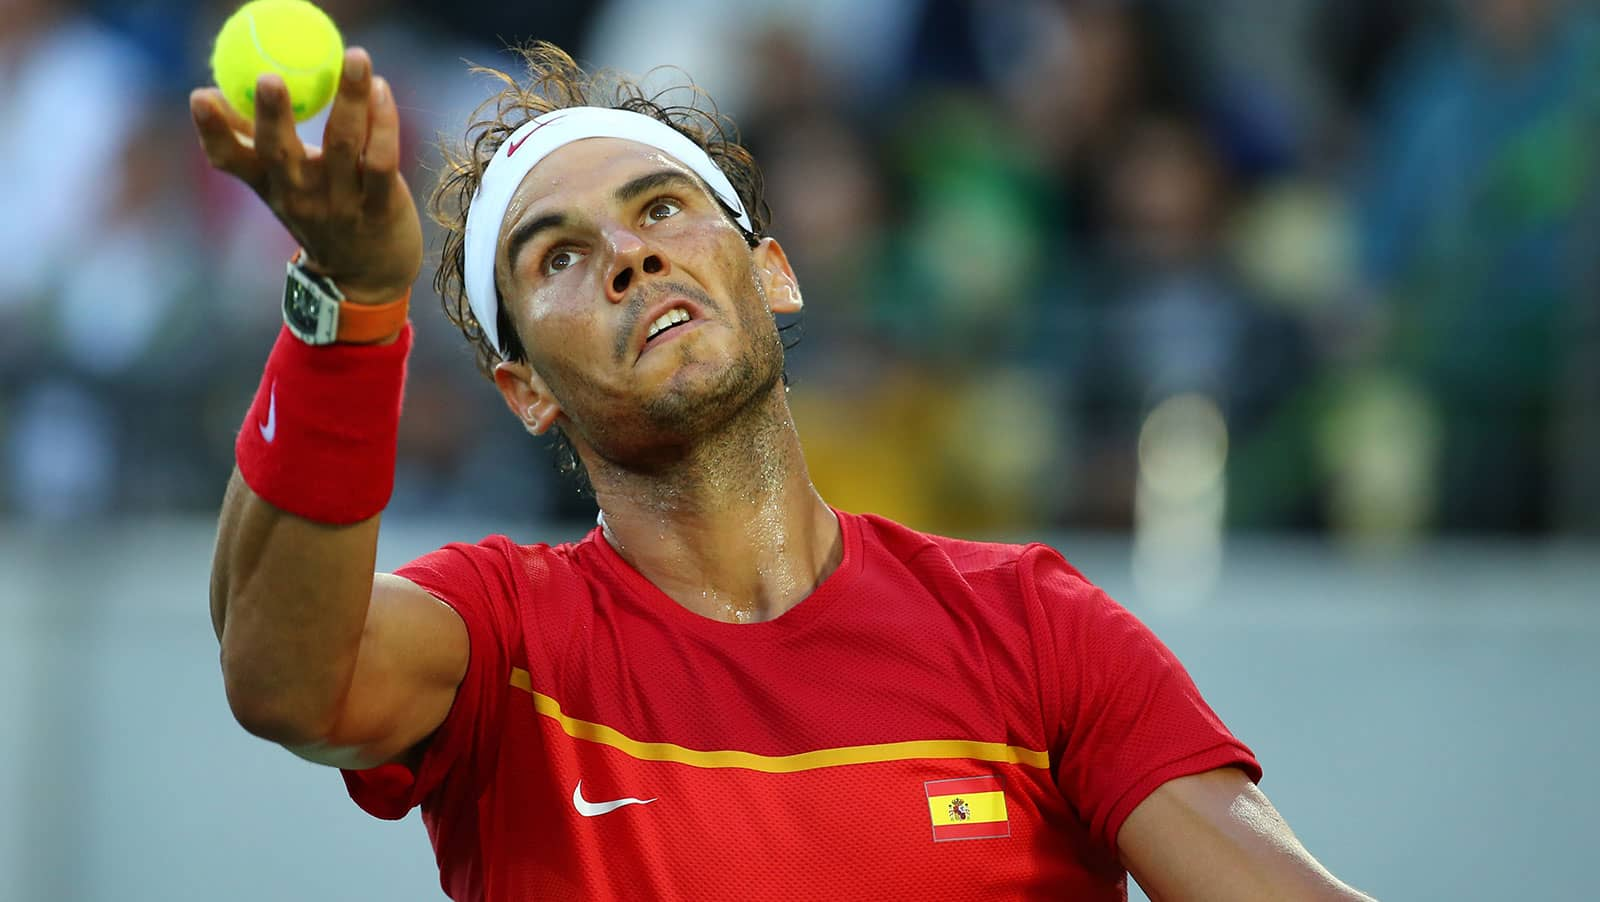 Davis Cup Final sees Spain reign in Madrid as Nadal claims victory